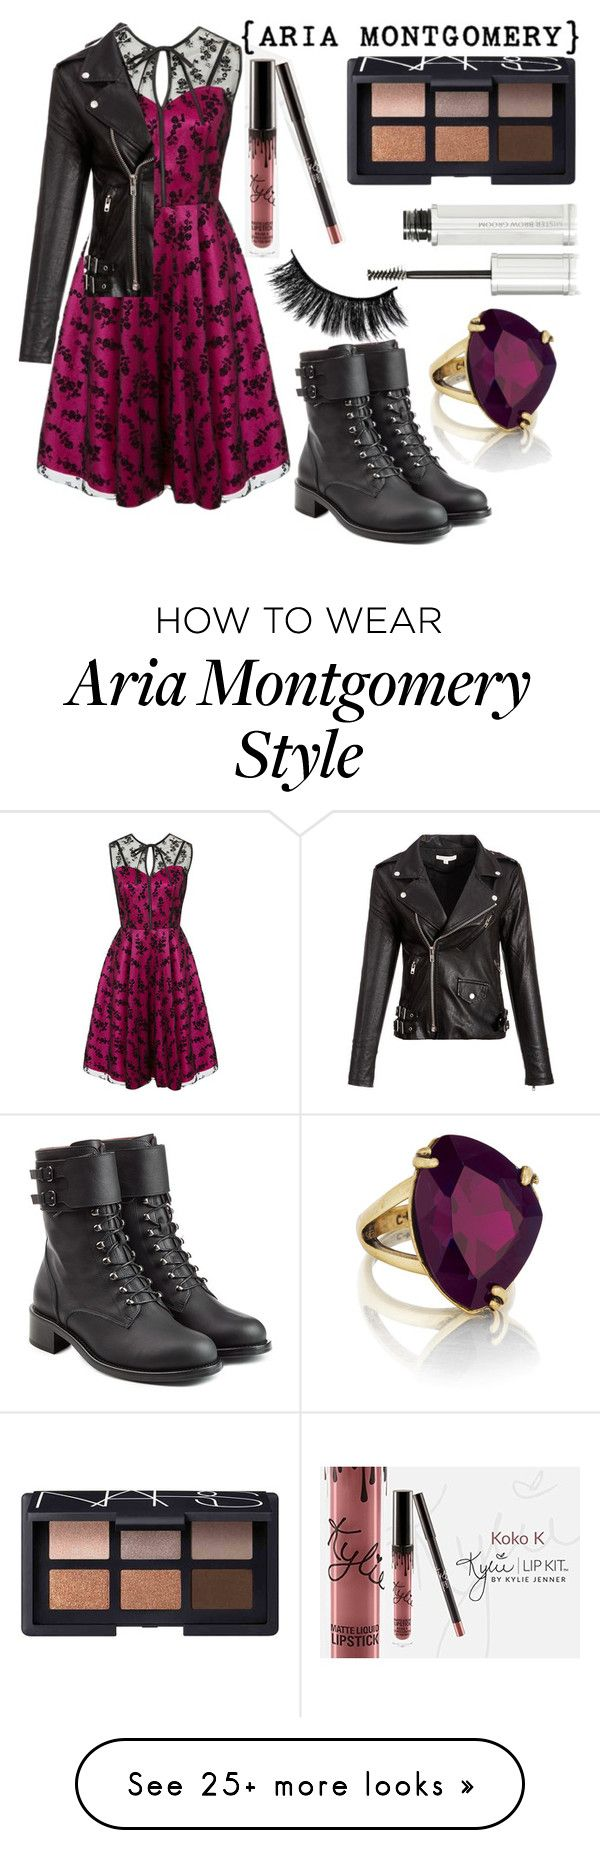 """Aria Montgomery"" by ashlyn91 on Polyvore featuring Voodoo Vixen, Philosophy di Lorenzo Serafini, Chloe + Isabel, NARS Cosmetics and Givenchy"